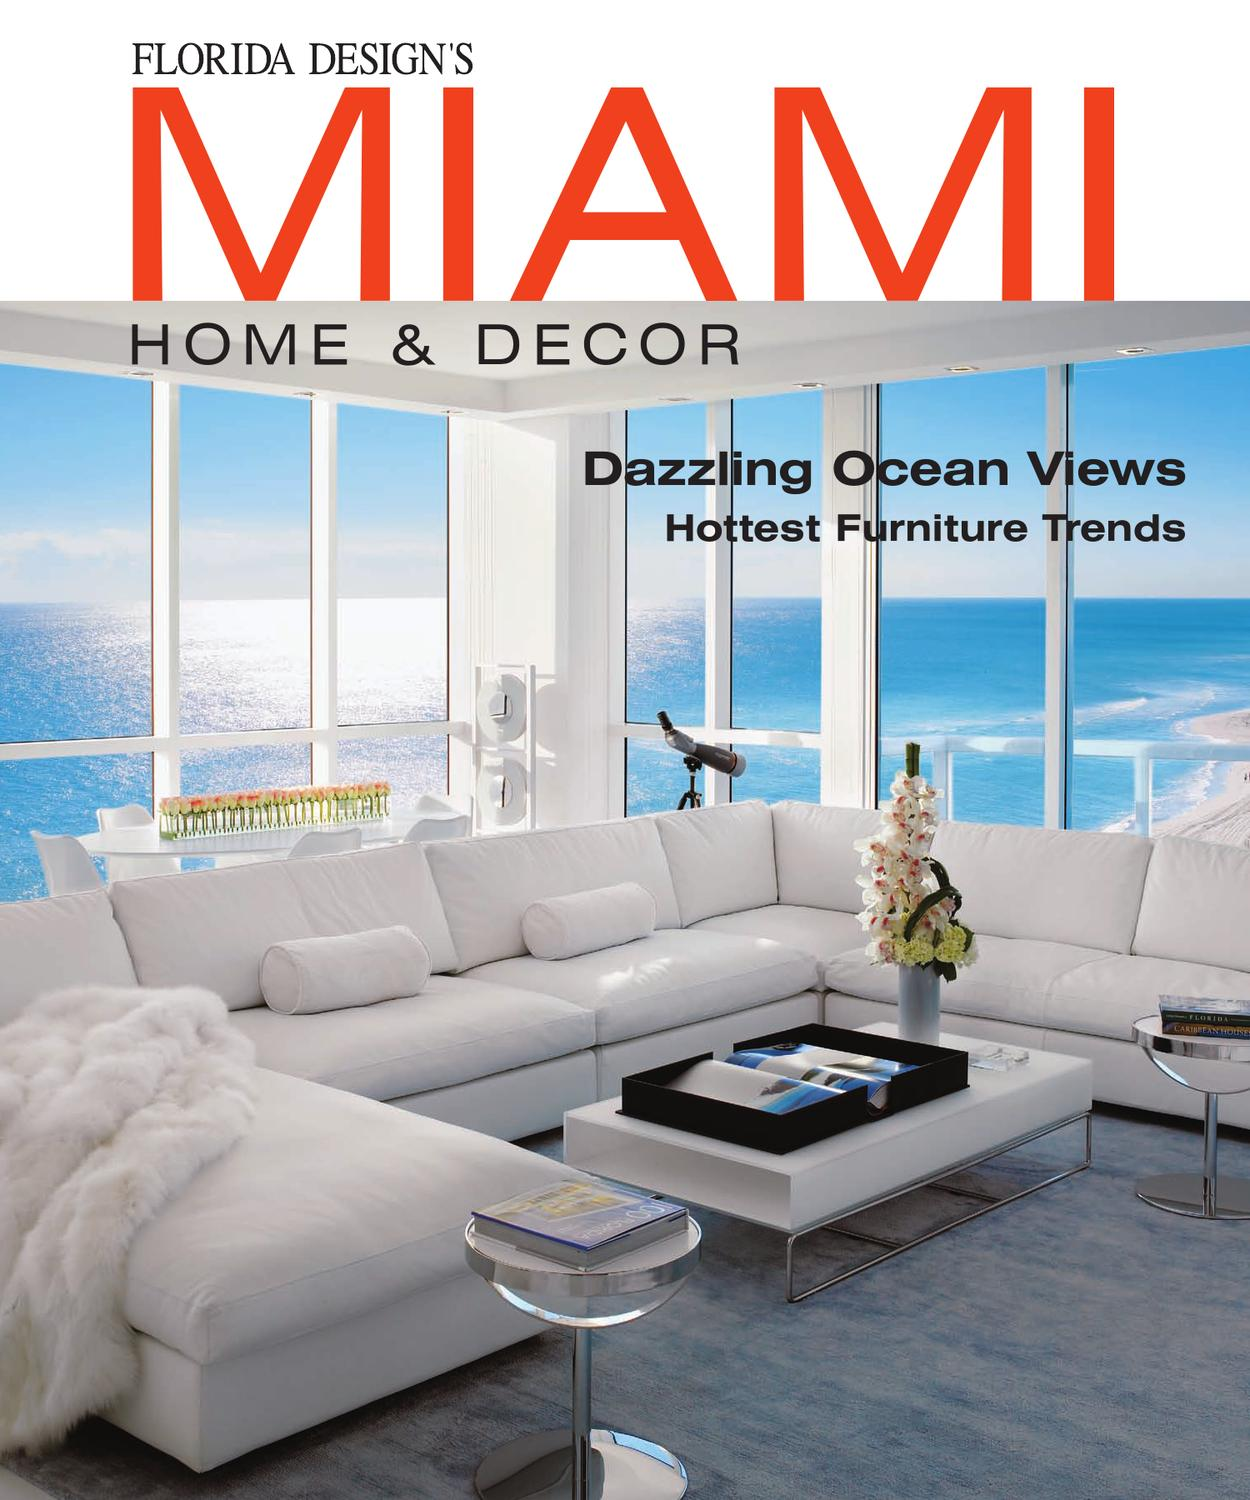 home decoration stores in miami miami home amp decor magazine by florida design inc issuu 12775